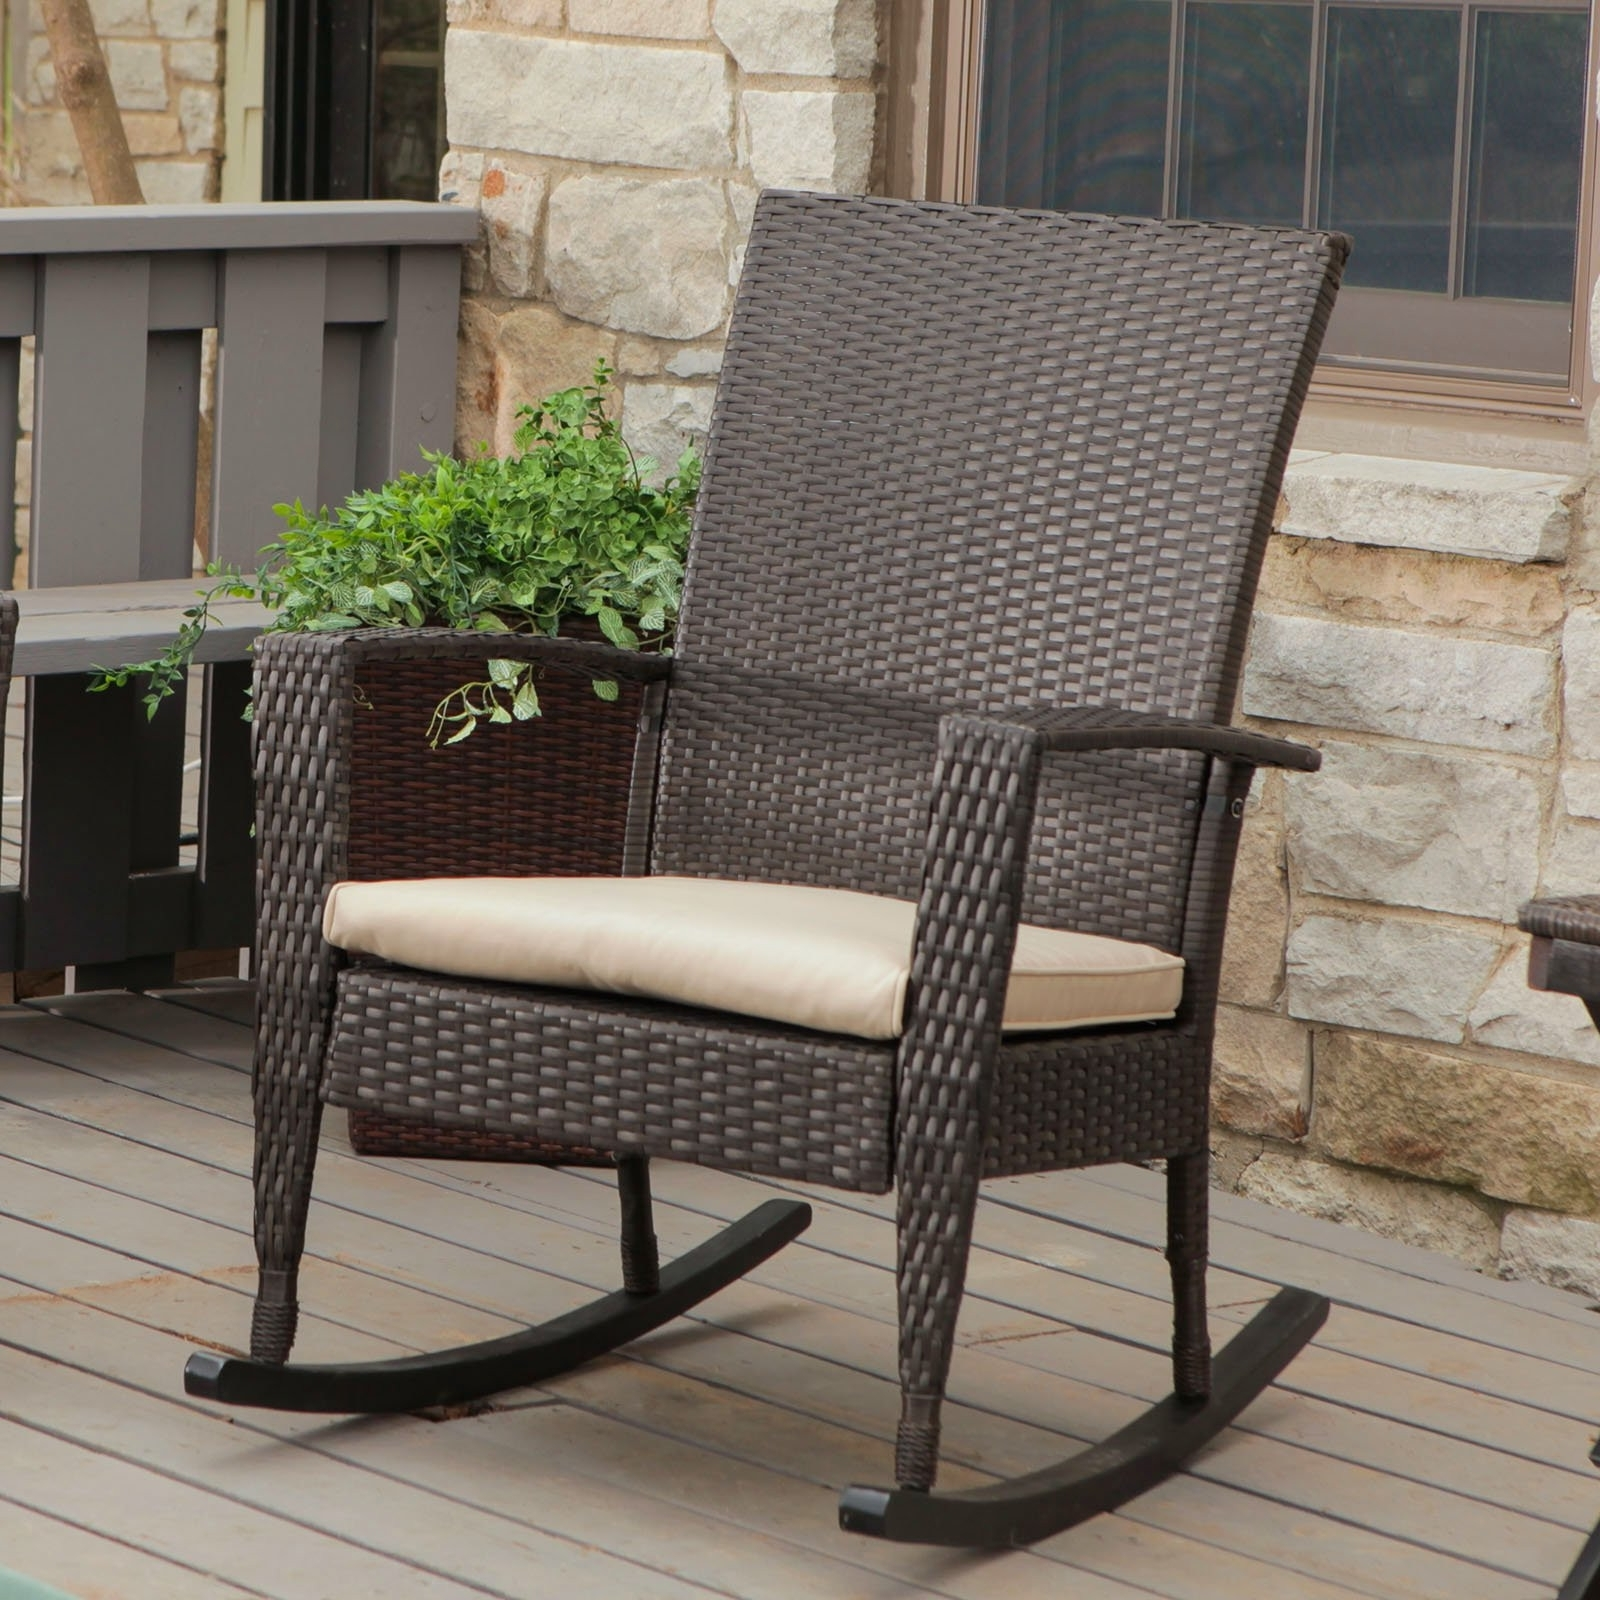 Outside Rocking Chair Sets Pertaining To Favorite Rocking Patio Furniture Set Beautiful Garden Furniture Covers B And (View 5 of 15)